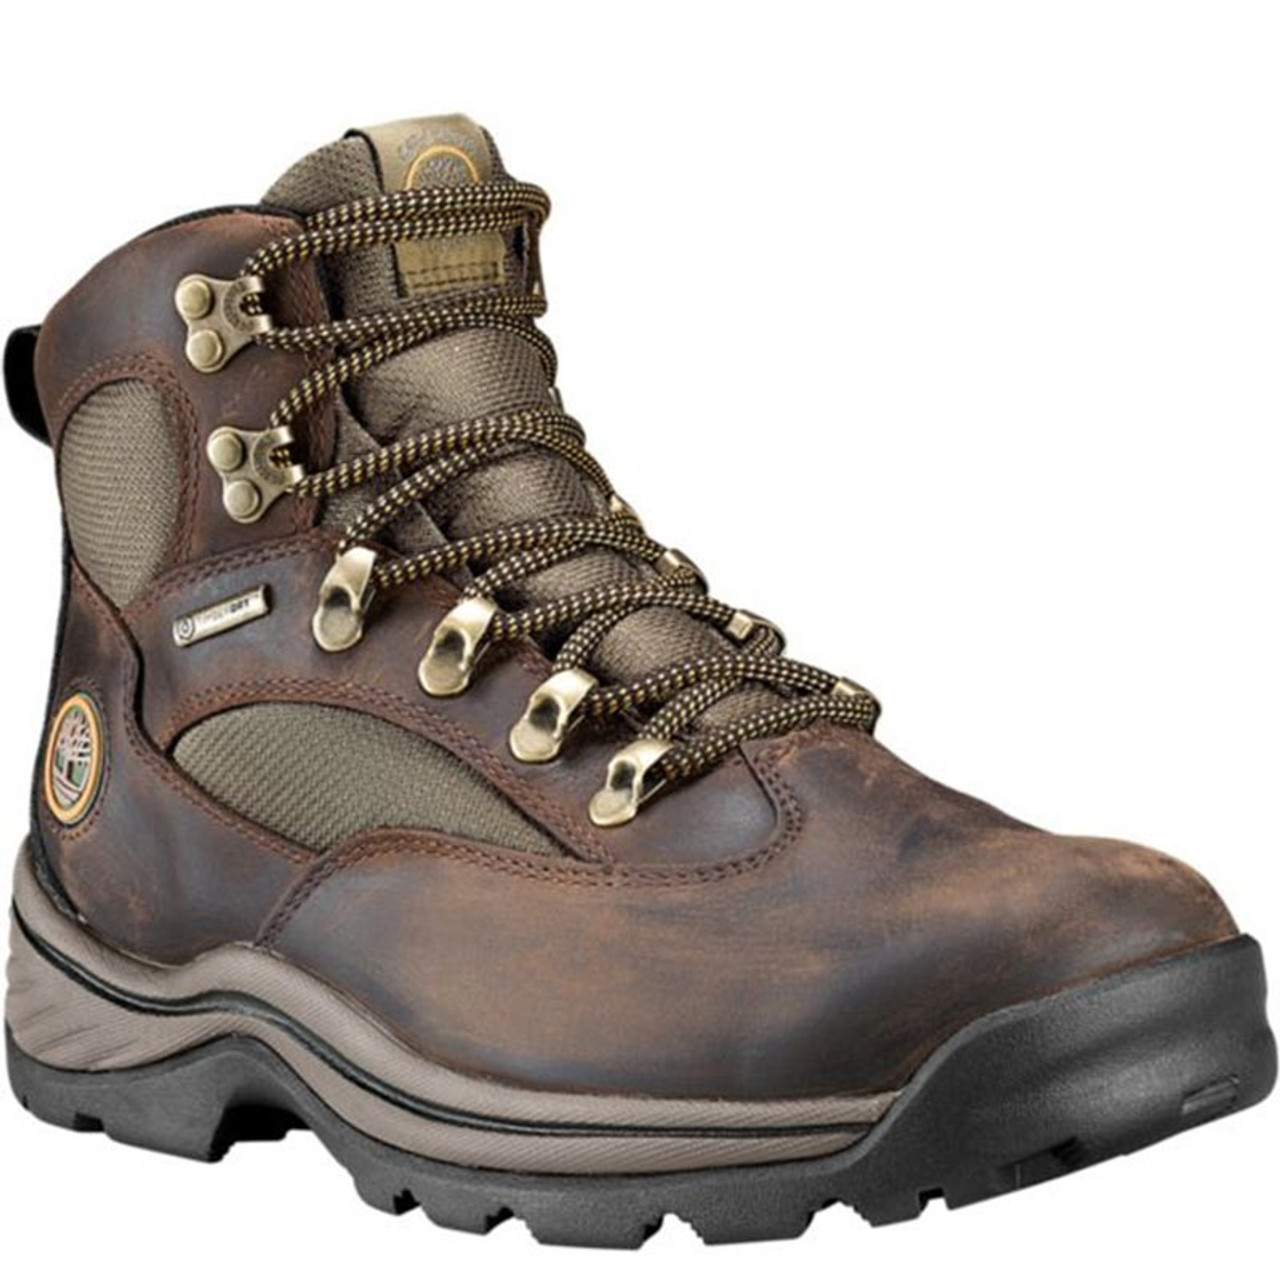 2db386a356c0d Timberland 15130 CHOCORUA TRAIL 2.0 Waterproof Hiking Boots - Family  Footwear Center